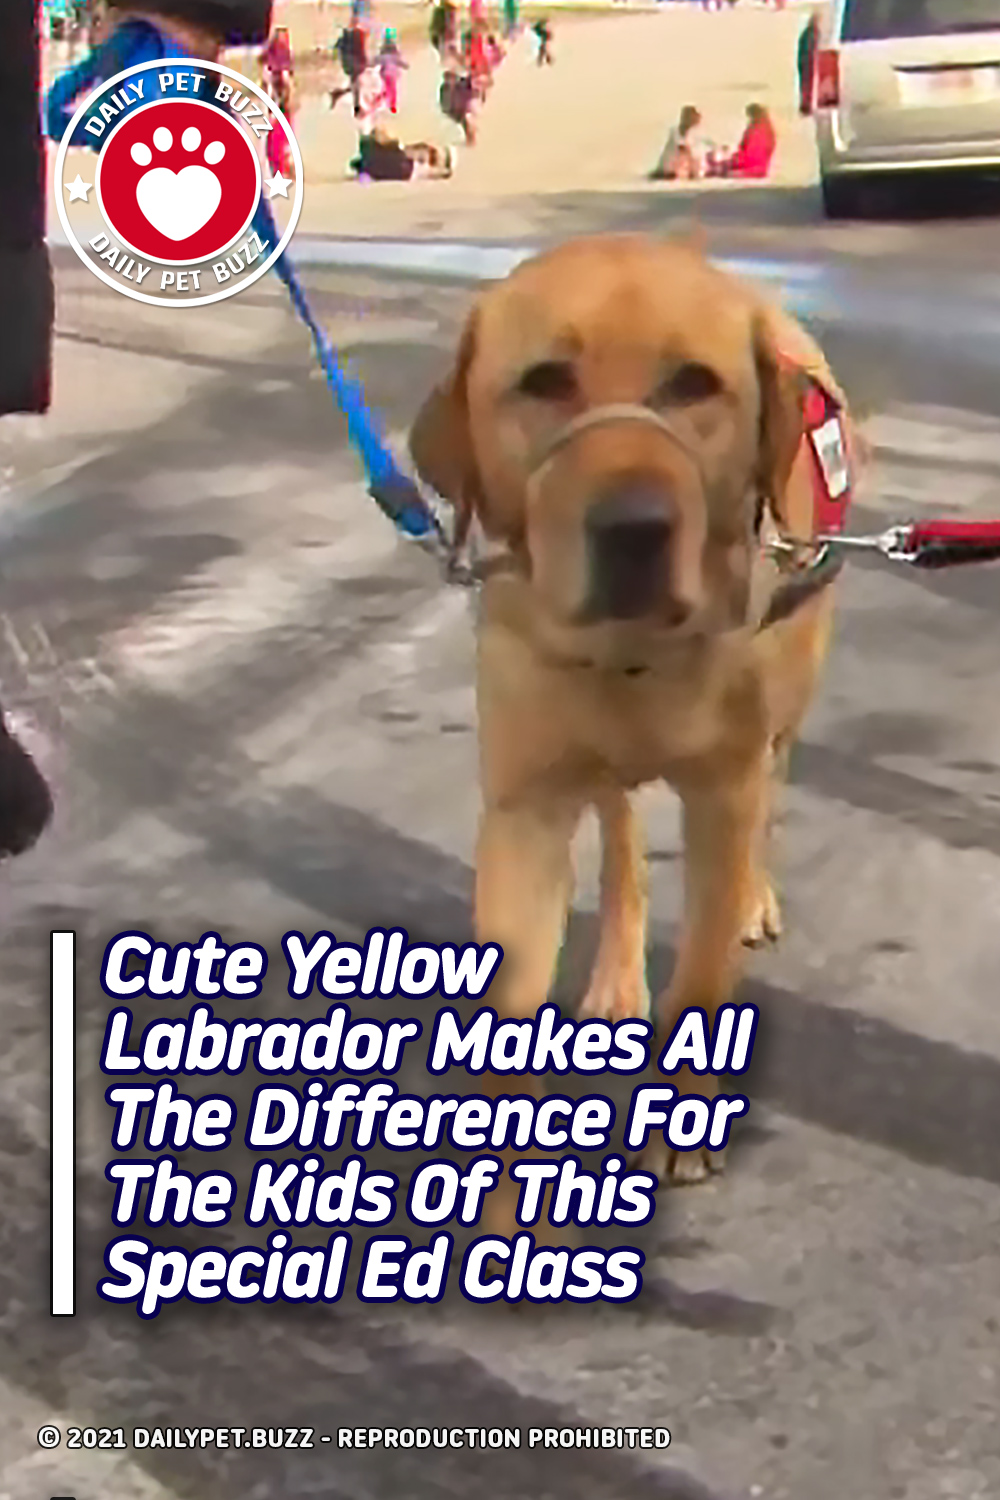 Cute Yellow Labrador Makes All The Difference For The Kids Of This Special Ed Class